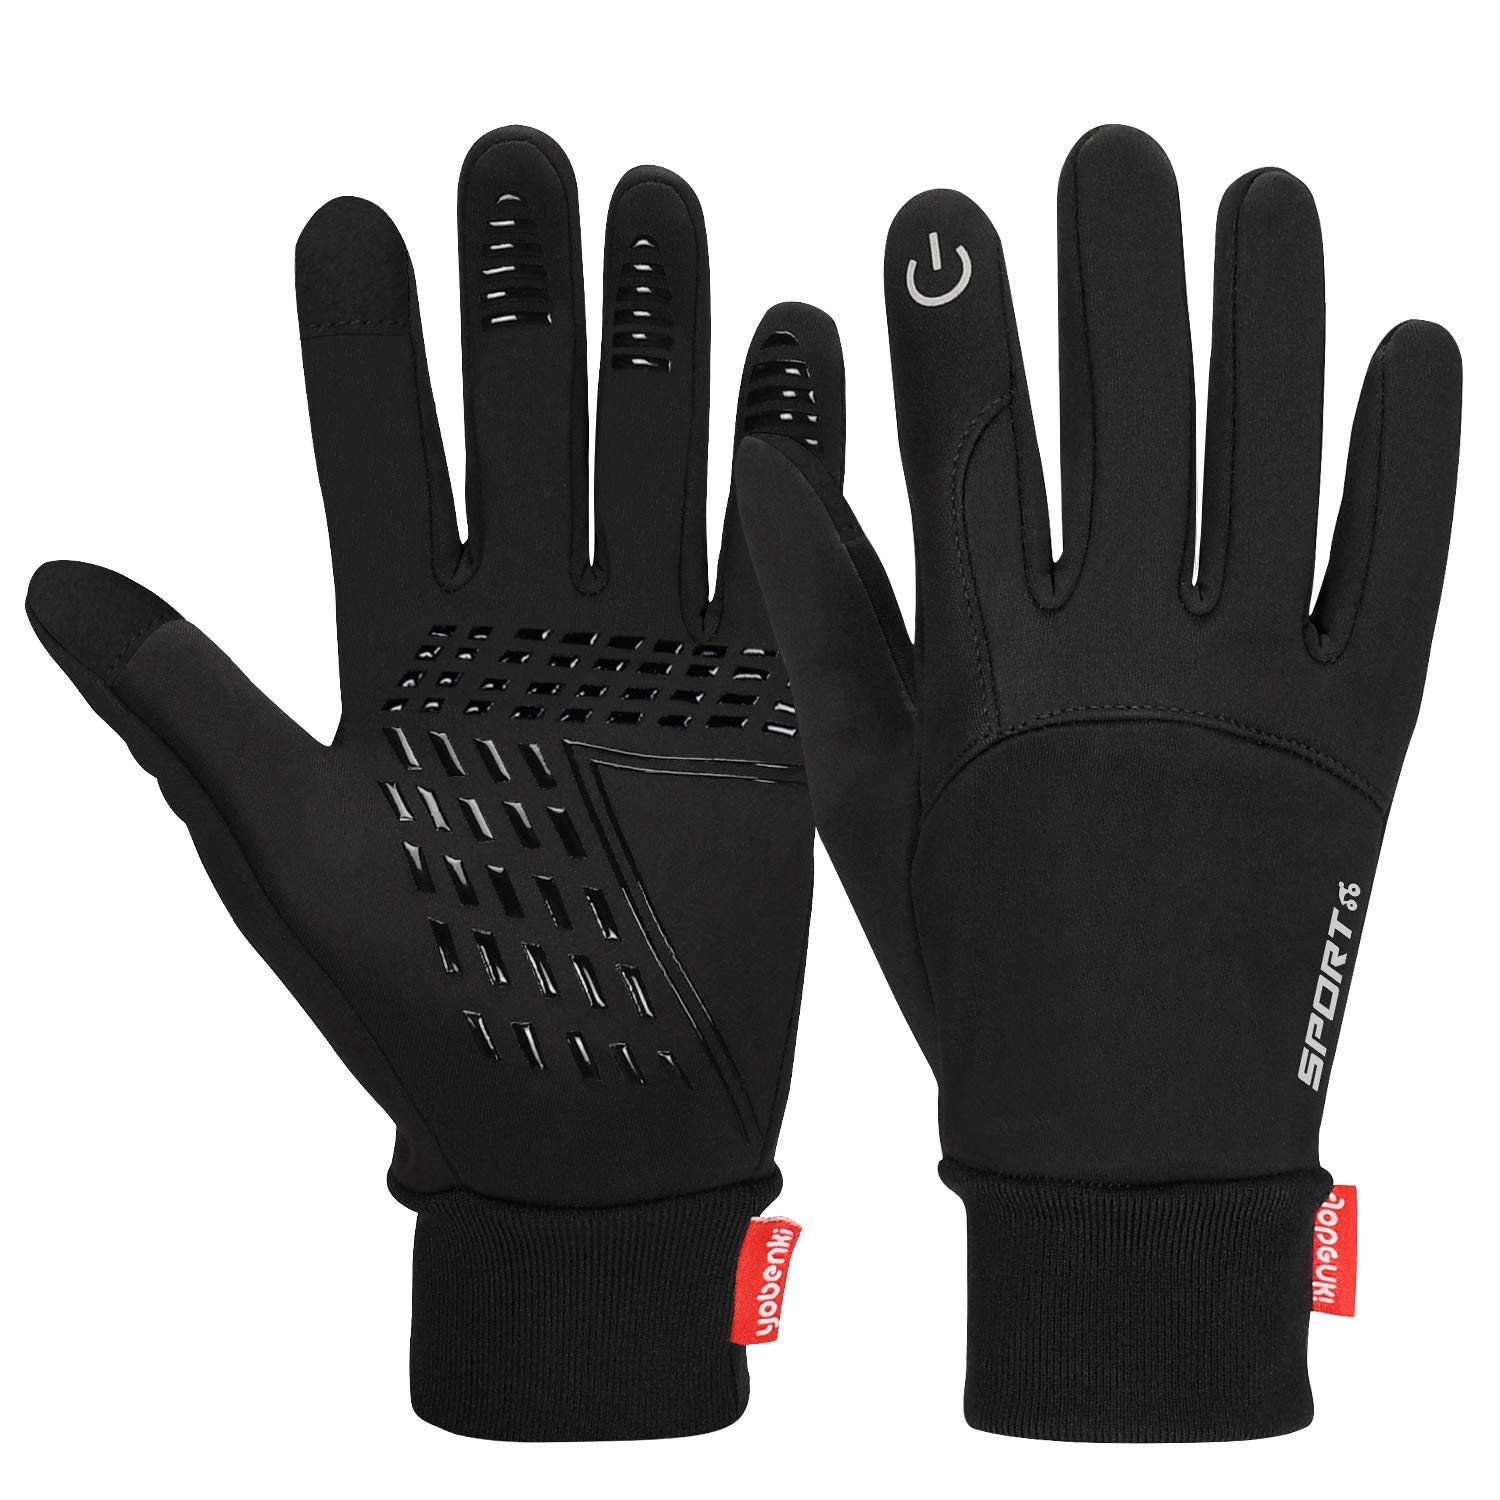 acf9d5695fcc8 Cevapro Winter Warm Gloves, Touchscreen Gloves Cold Weather Cycling Gloves  Windproof Winter Sports Gloves for Running, Biking, Driving, Climbing, ...